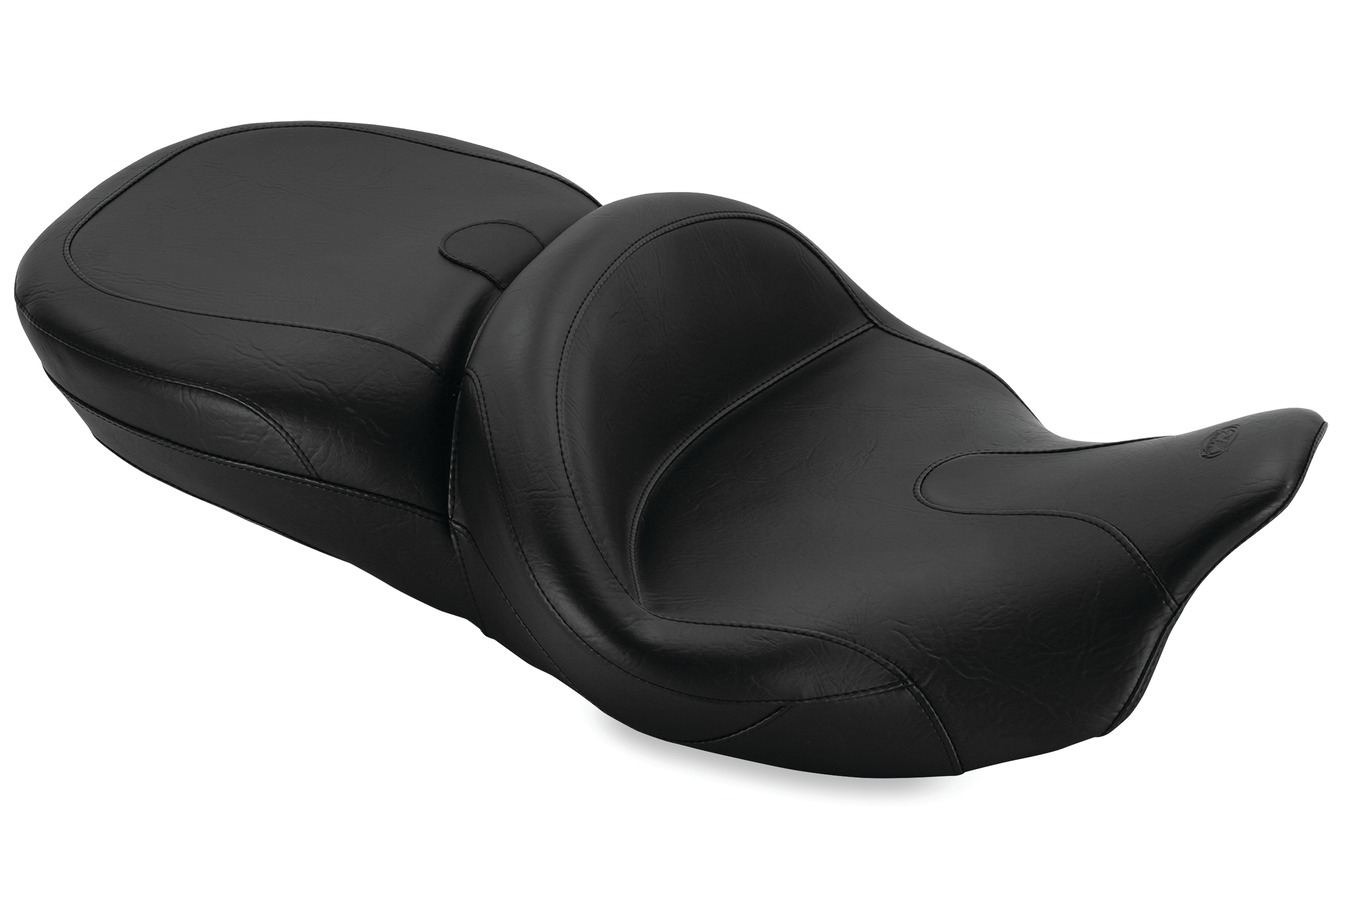 Super Touring Summit One-Piece Seat for Harley-Davidson Electra Glide Standard, Road Glide, Road King & Street Glide 2008-